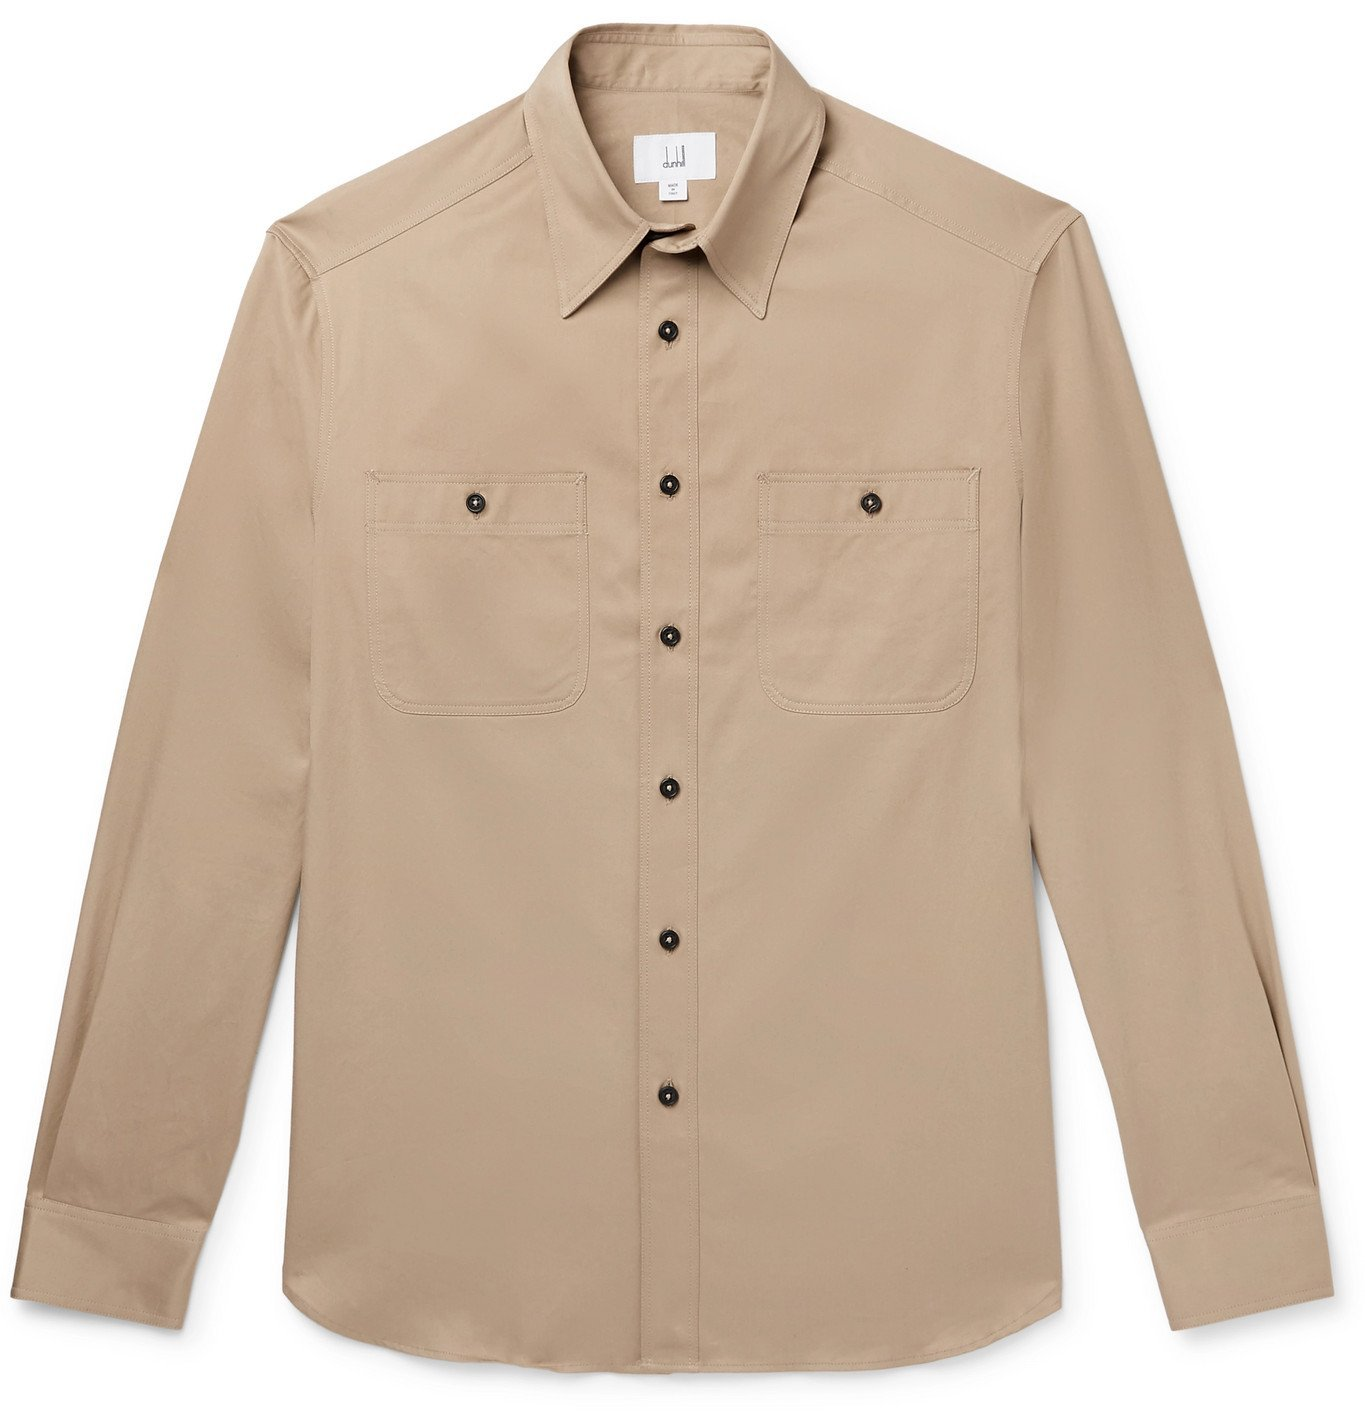 Dunhill - Cotton-Twill Shirt - Brown